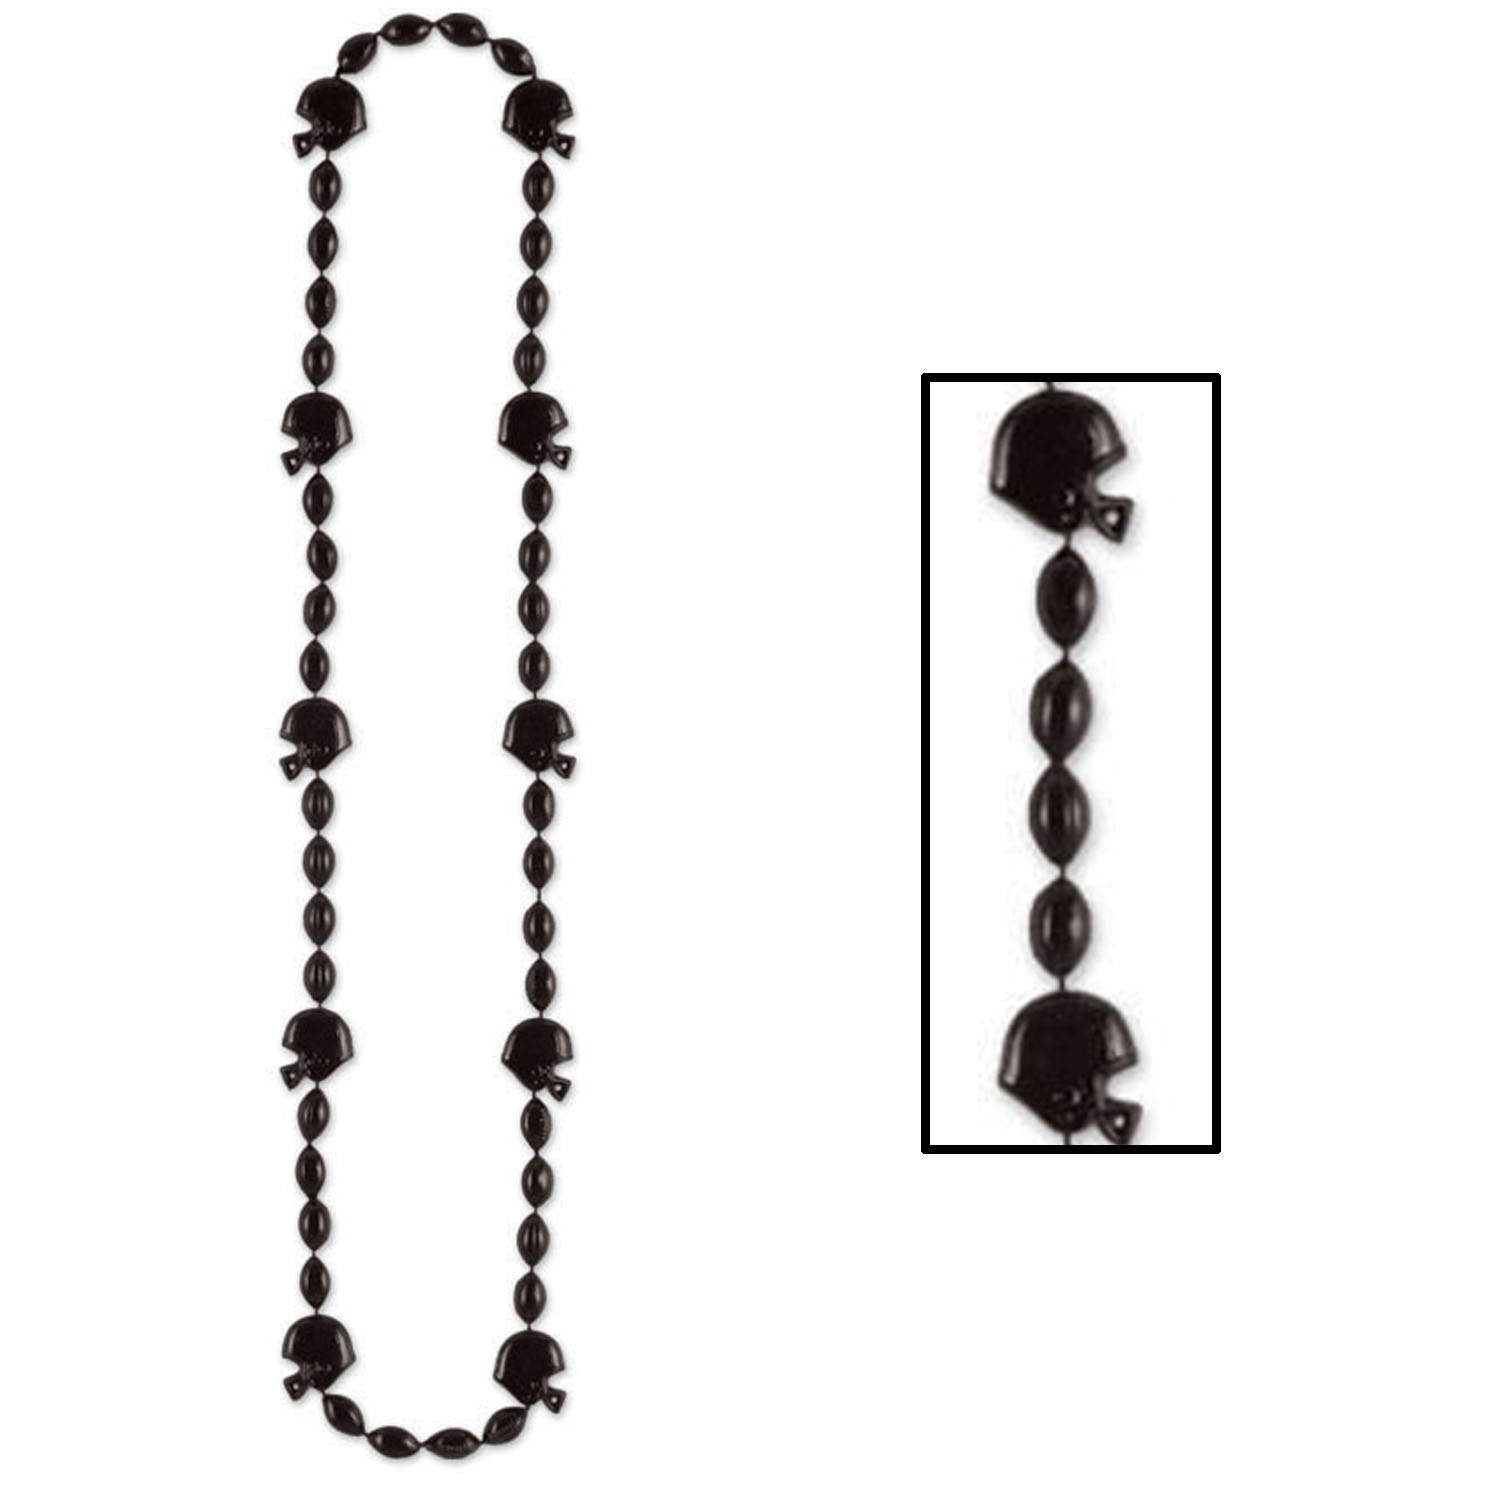 Football Beads (Pack of 12) black, onyx, beads, football, sprts, party, necklace